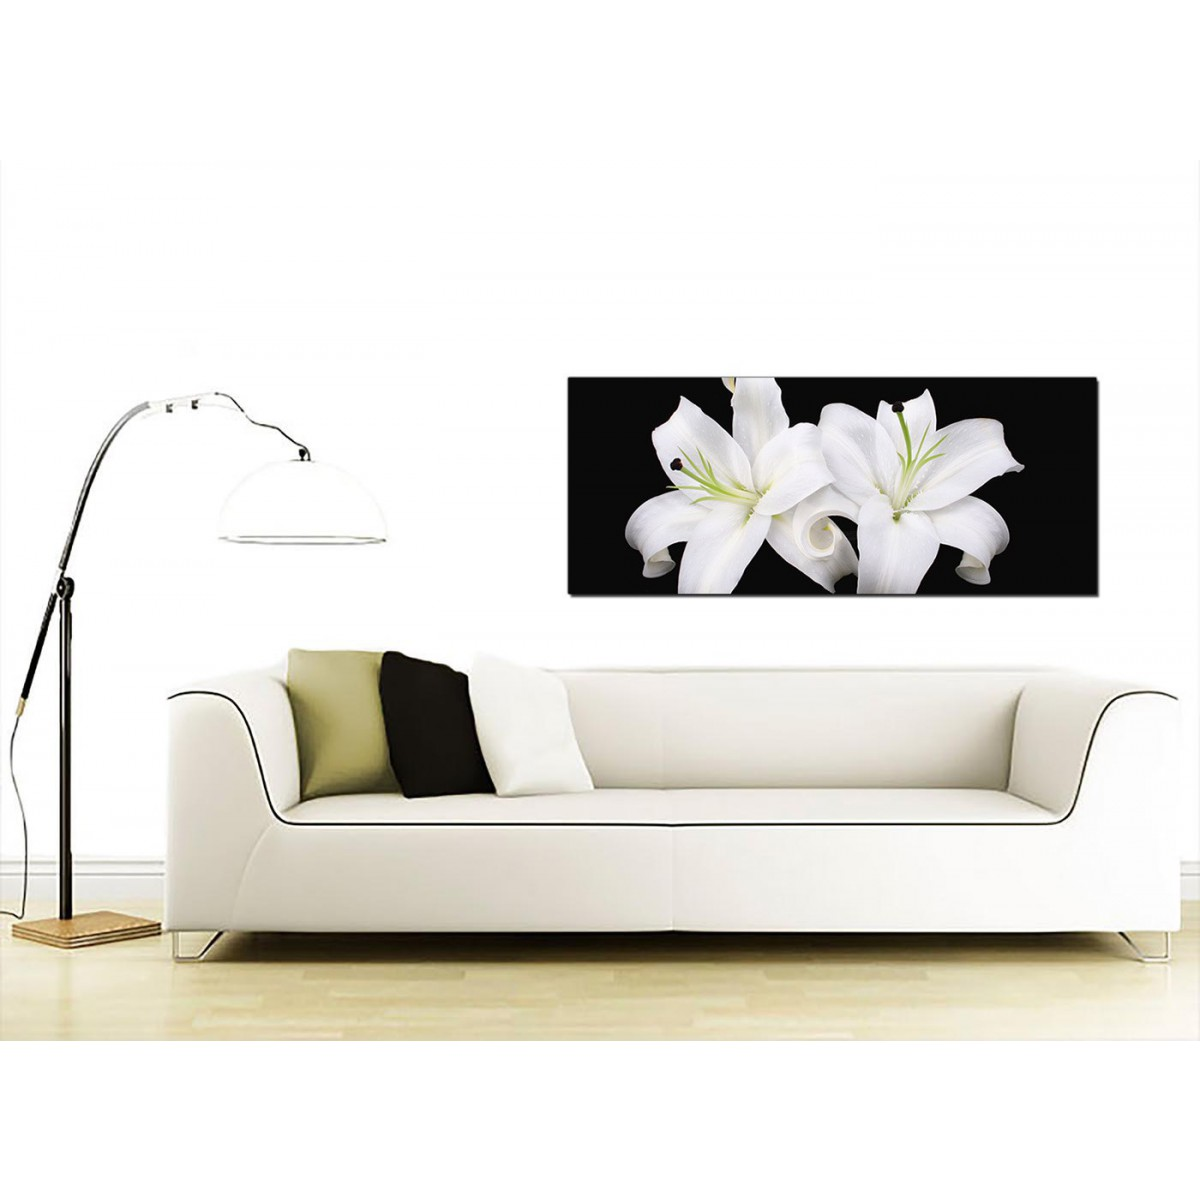 Large Black And White Posters Large Black And White Canvas Prints Of Lily Flowers